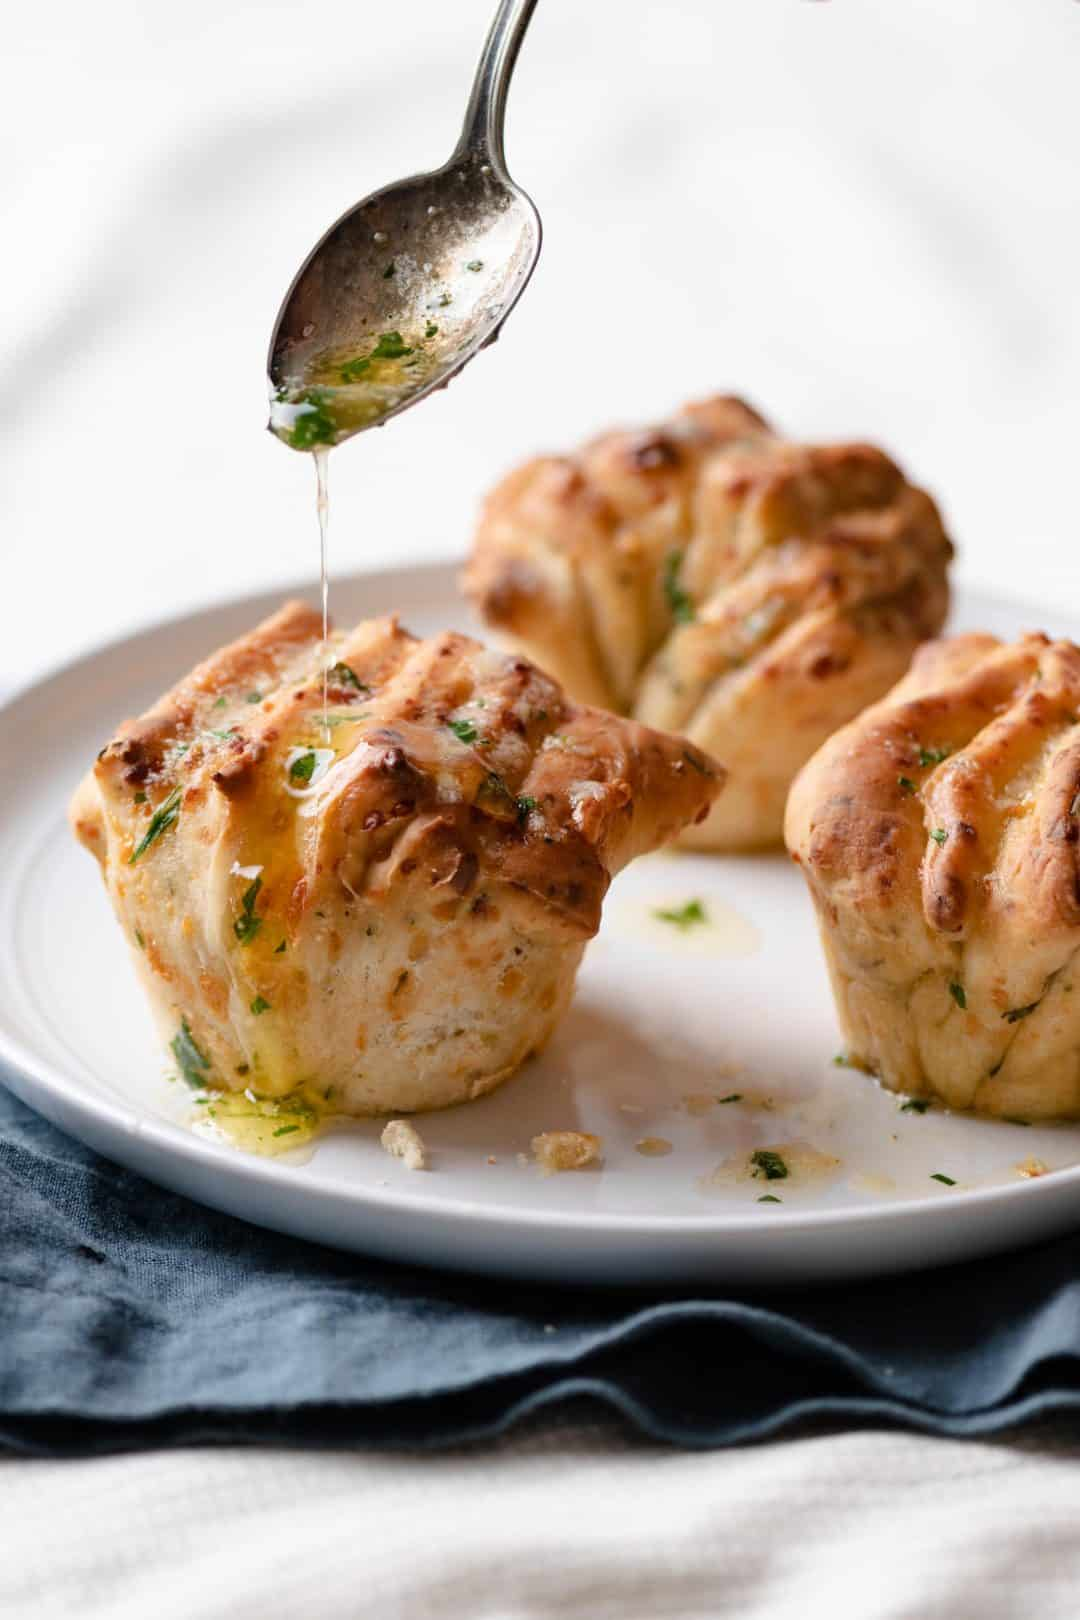 Parmesan Bread Recipe with Parsley butter drizzle